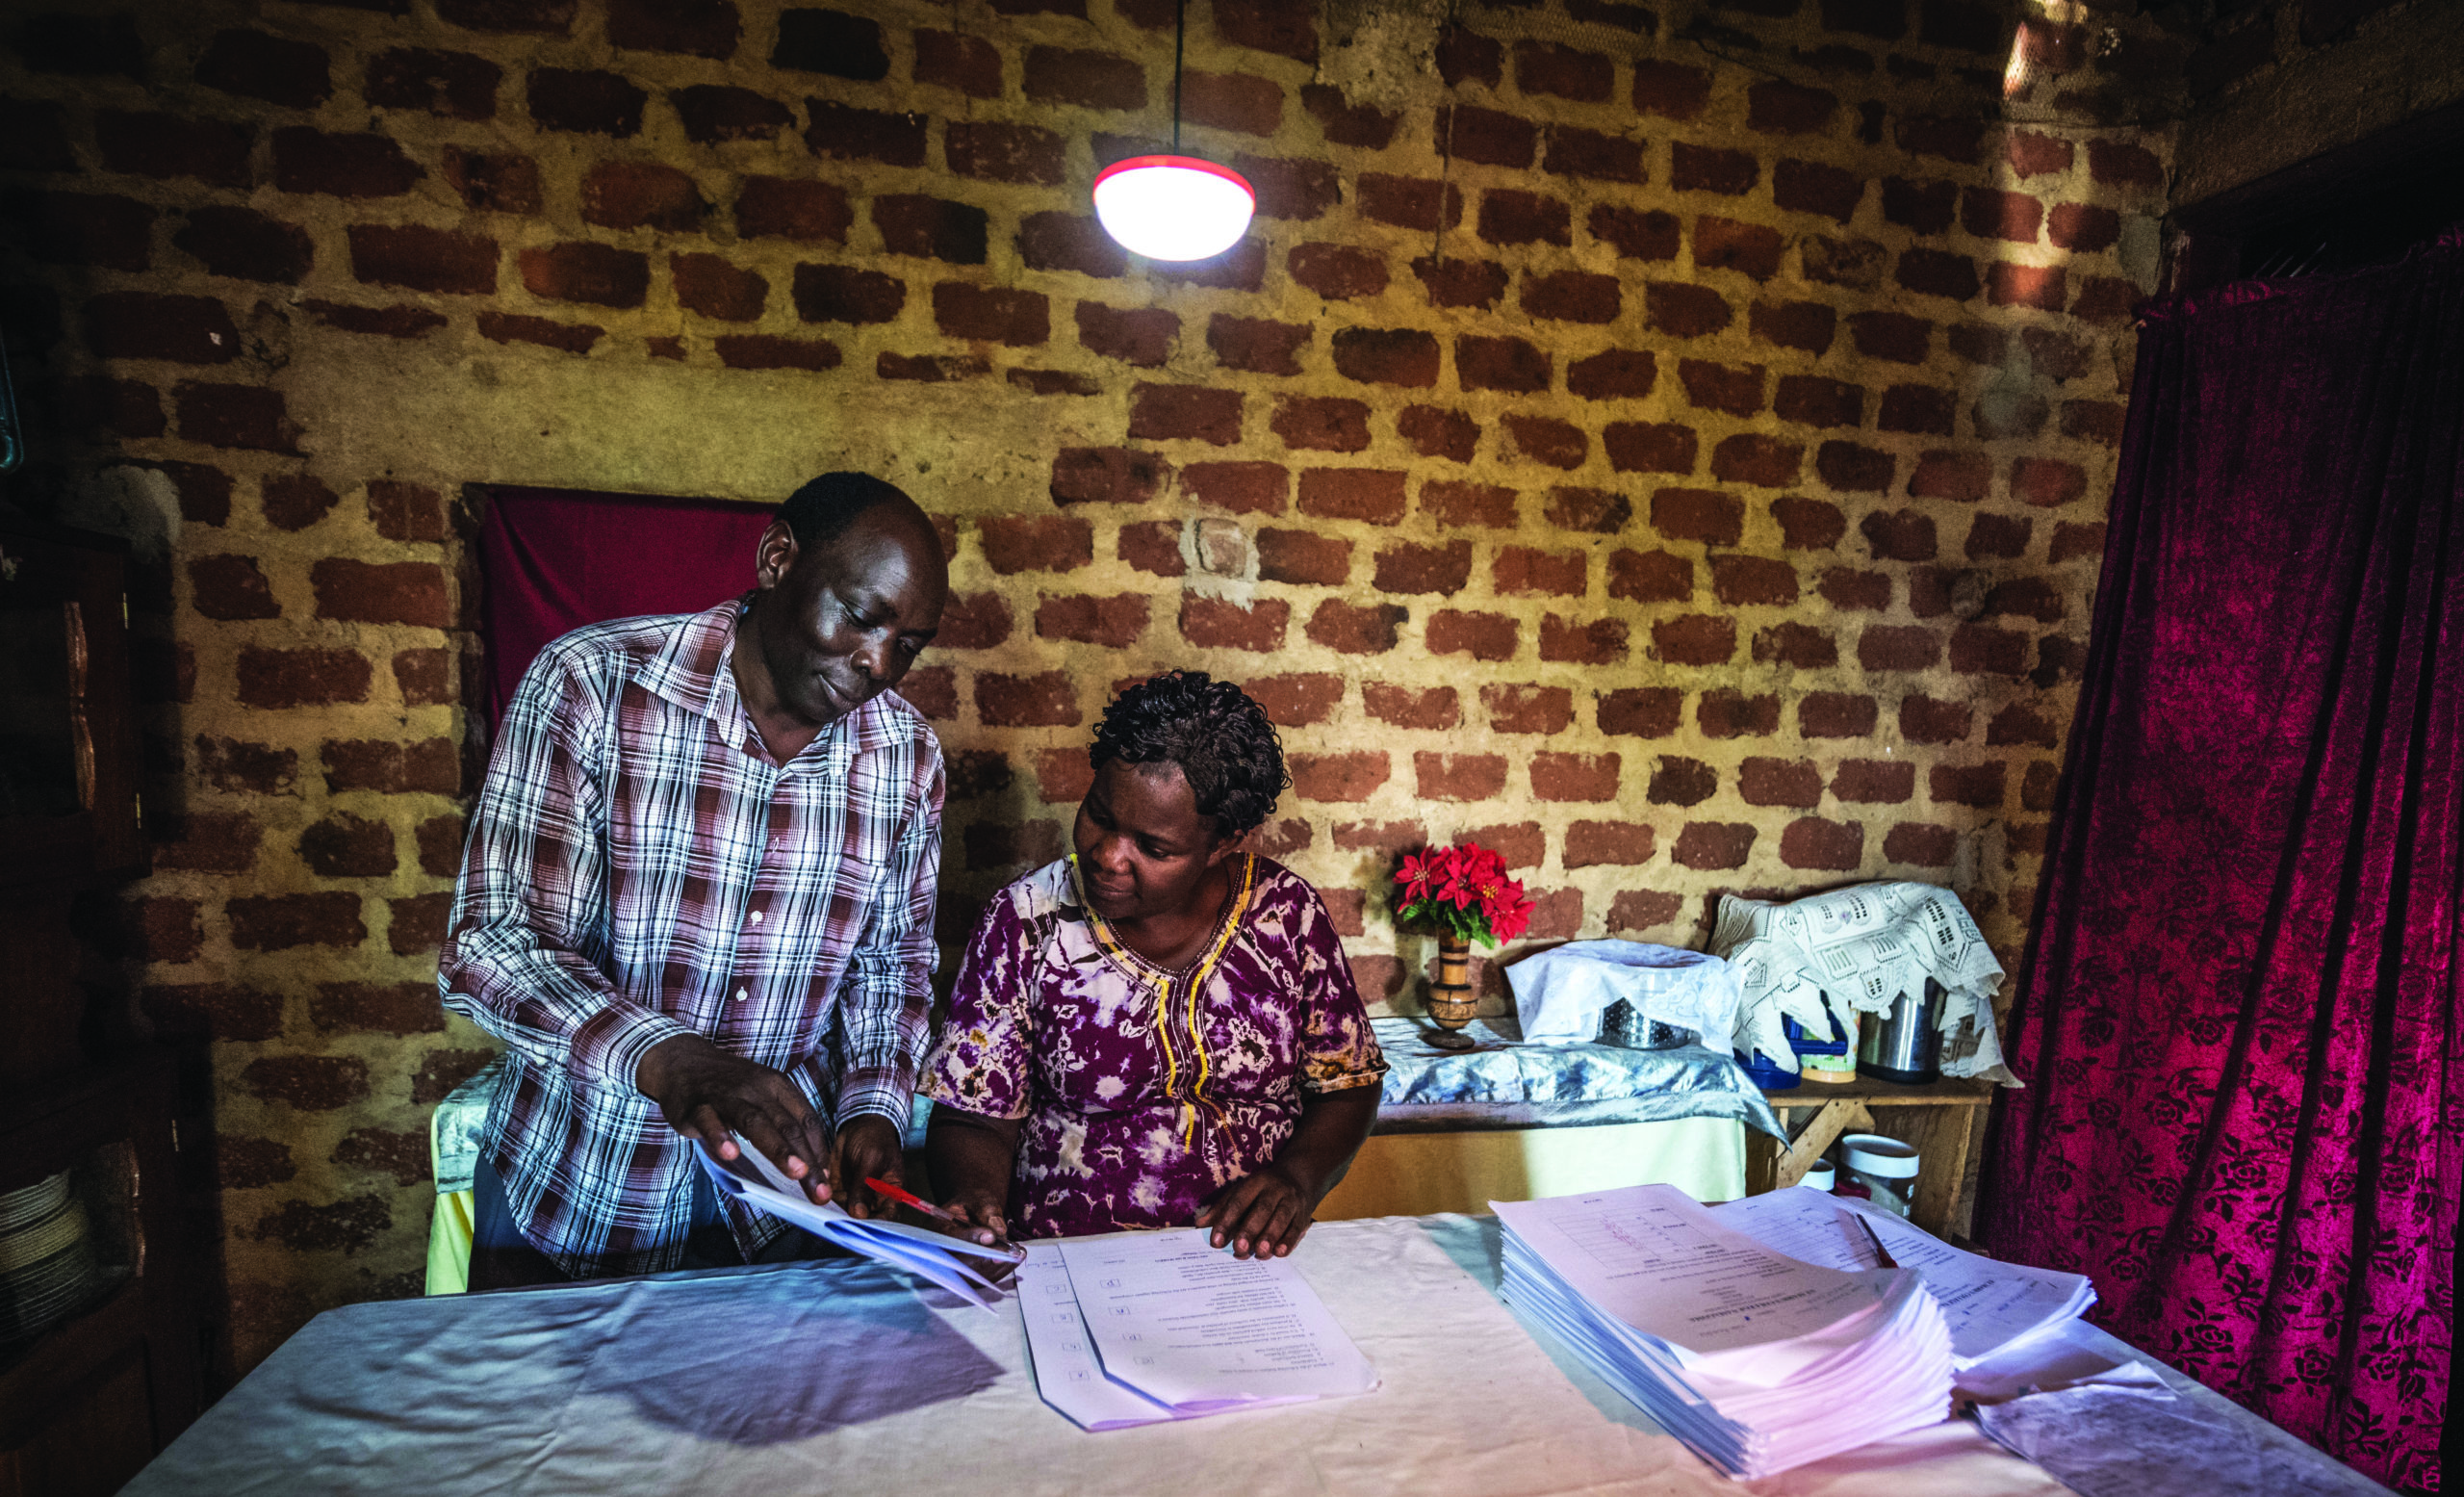 A rural classroom uses a solar powered light, a key product of East Africa's off-grid energy sector; image by FINCA International [A. Wright]